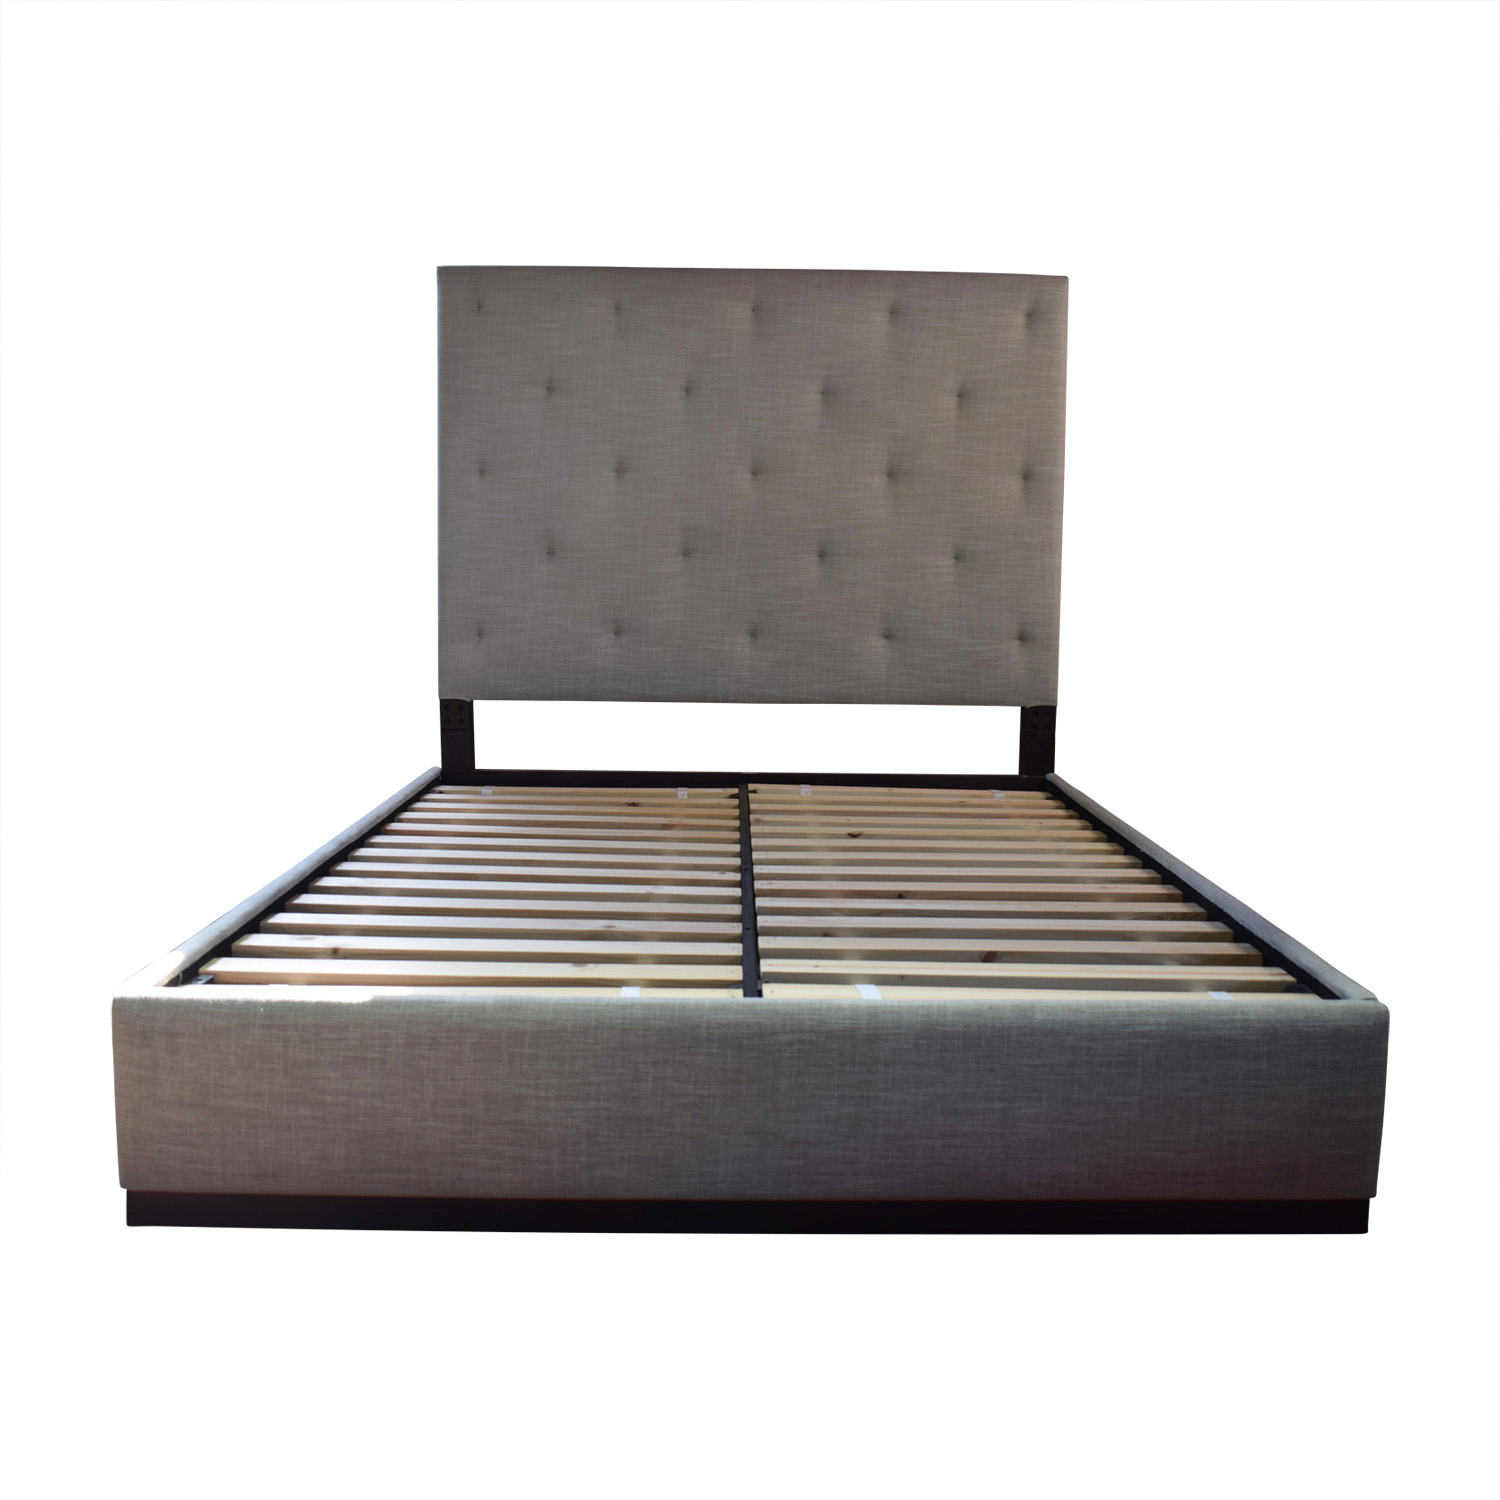 West Elm West Elm Beige Tufted Platform Queen Bed Frame